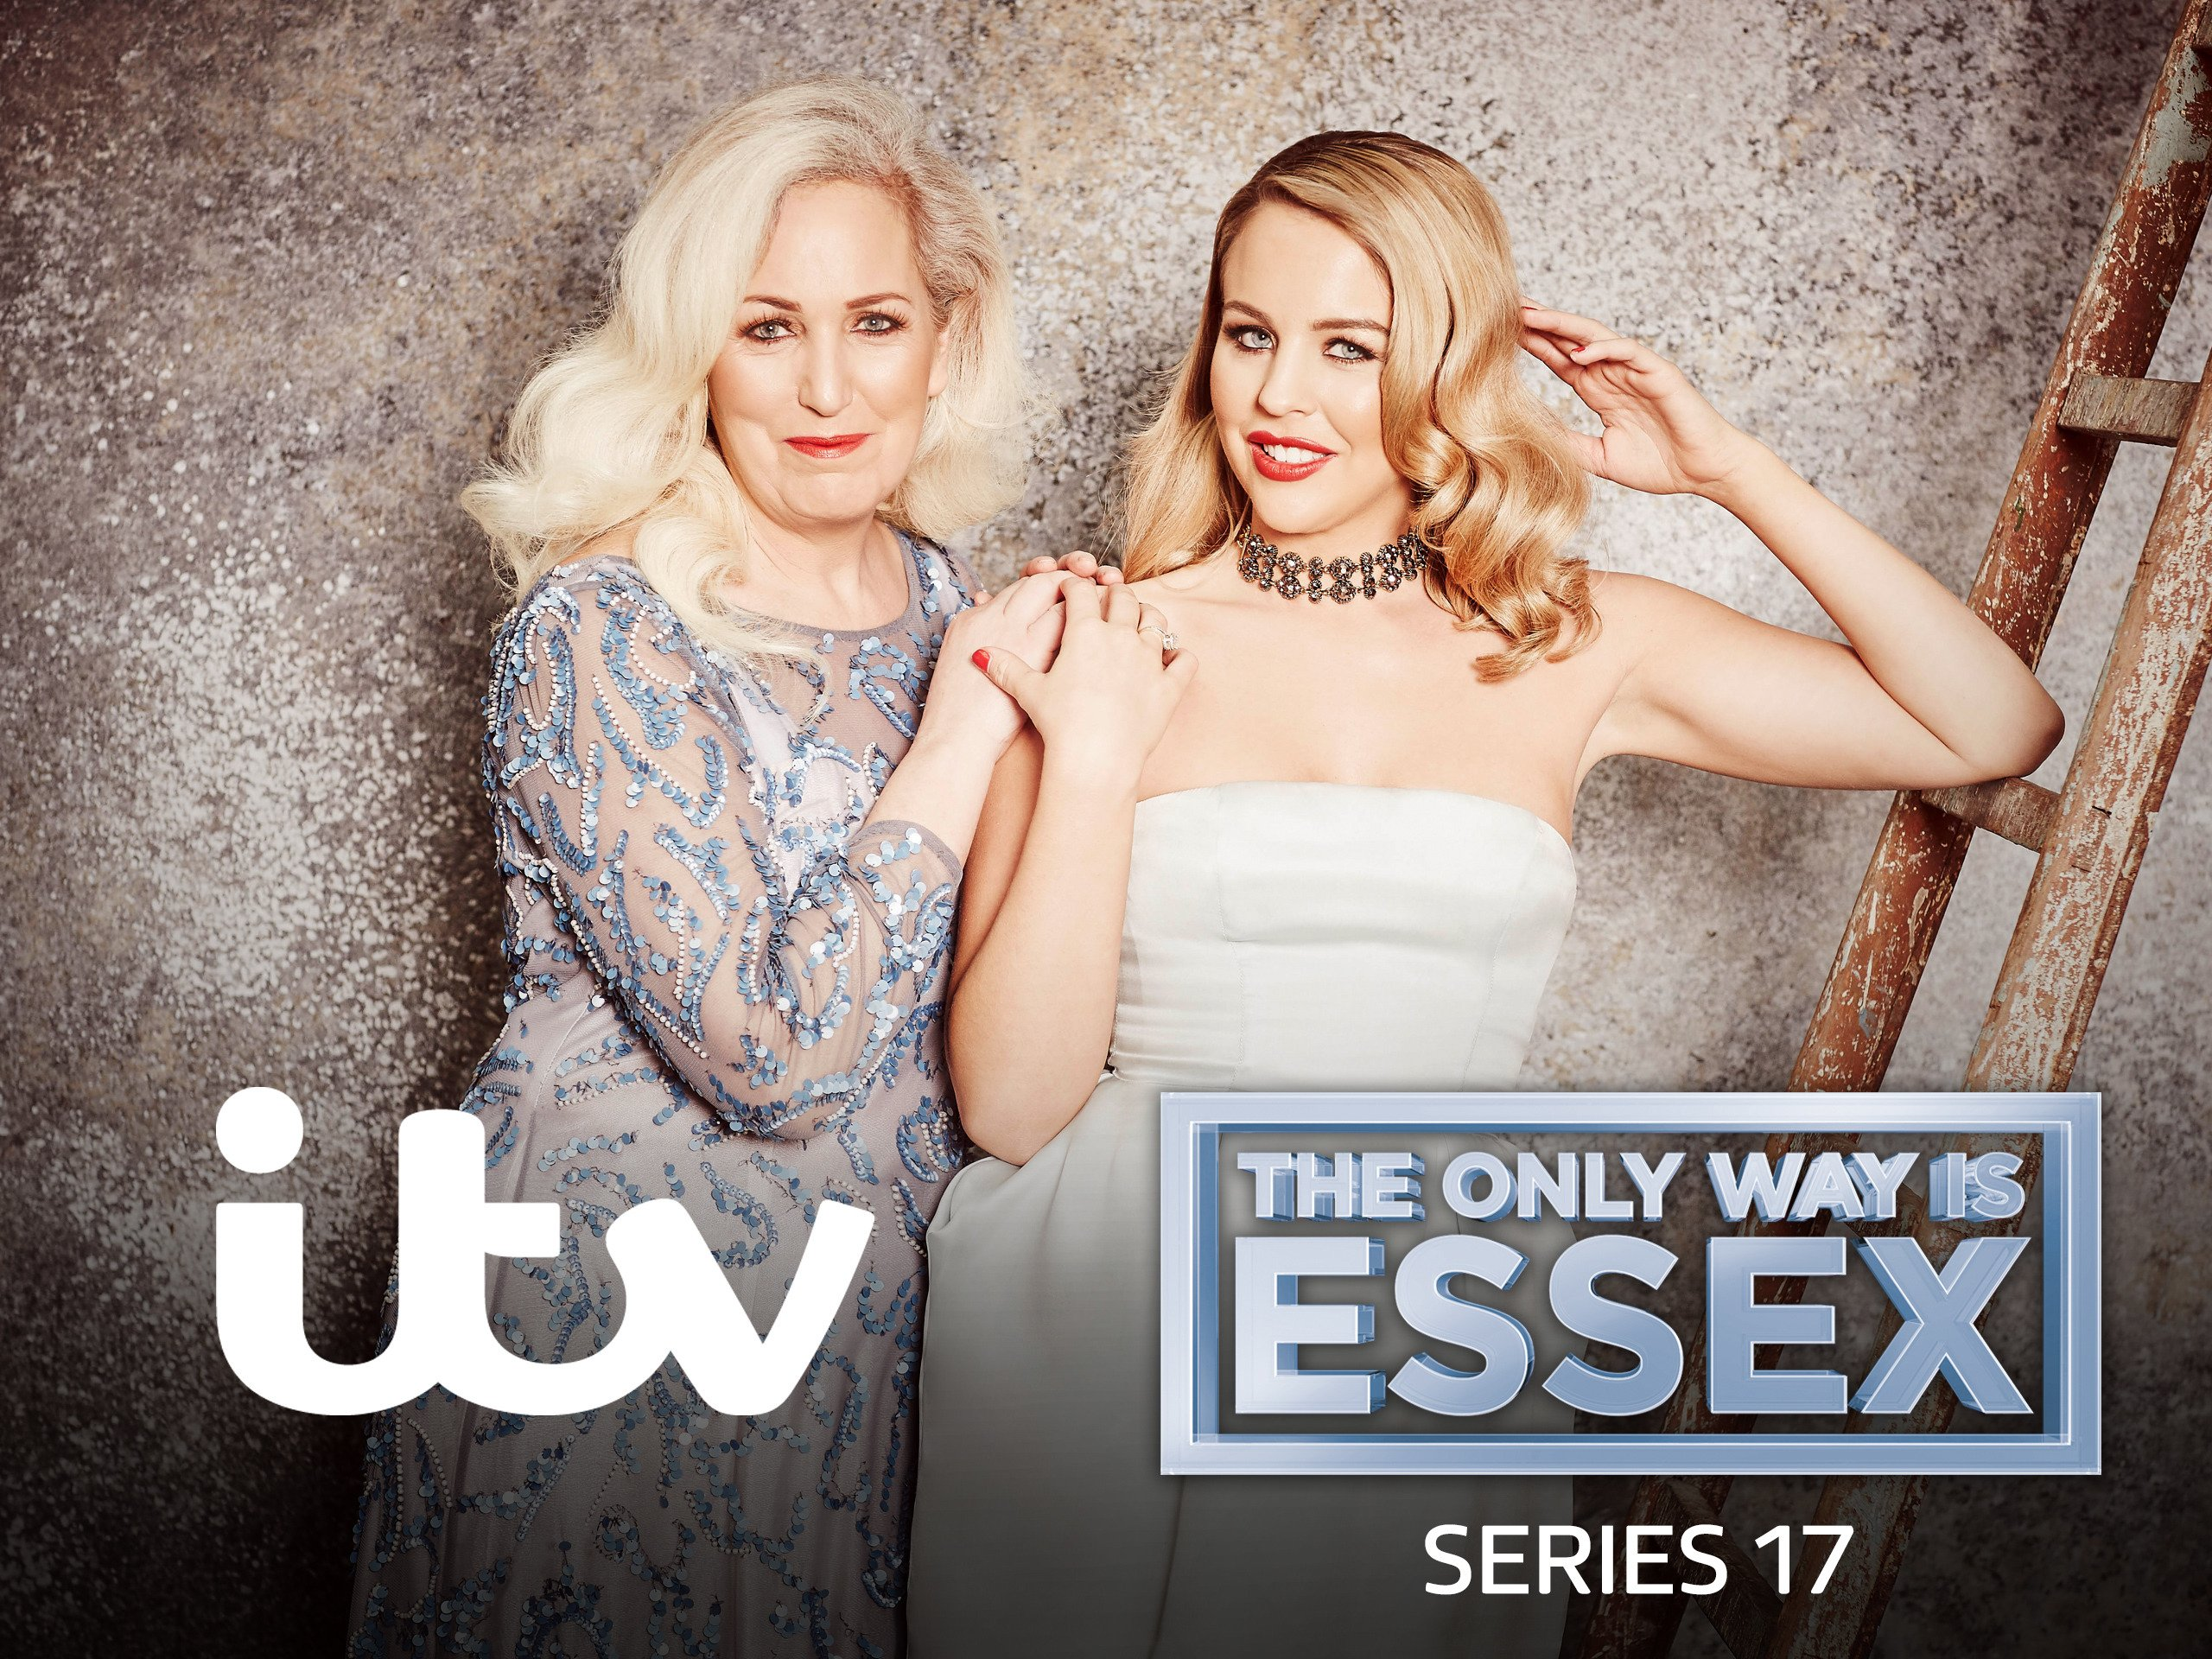 the only way is essex season 21 episode 14